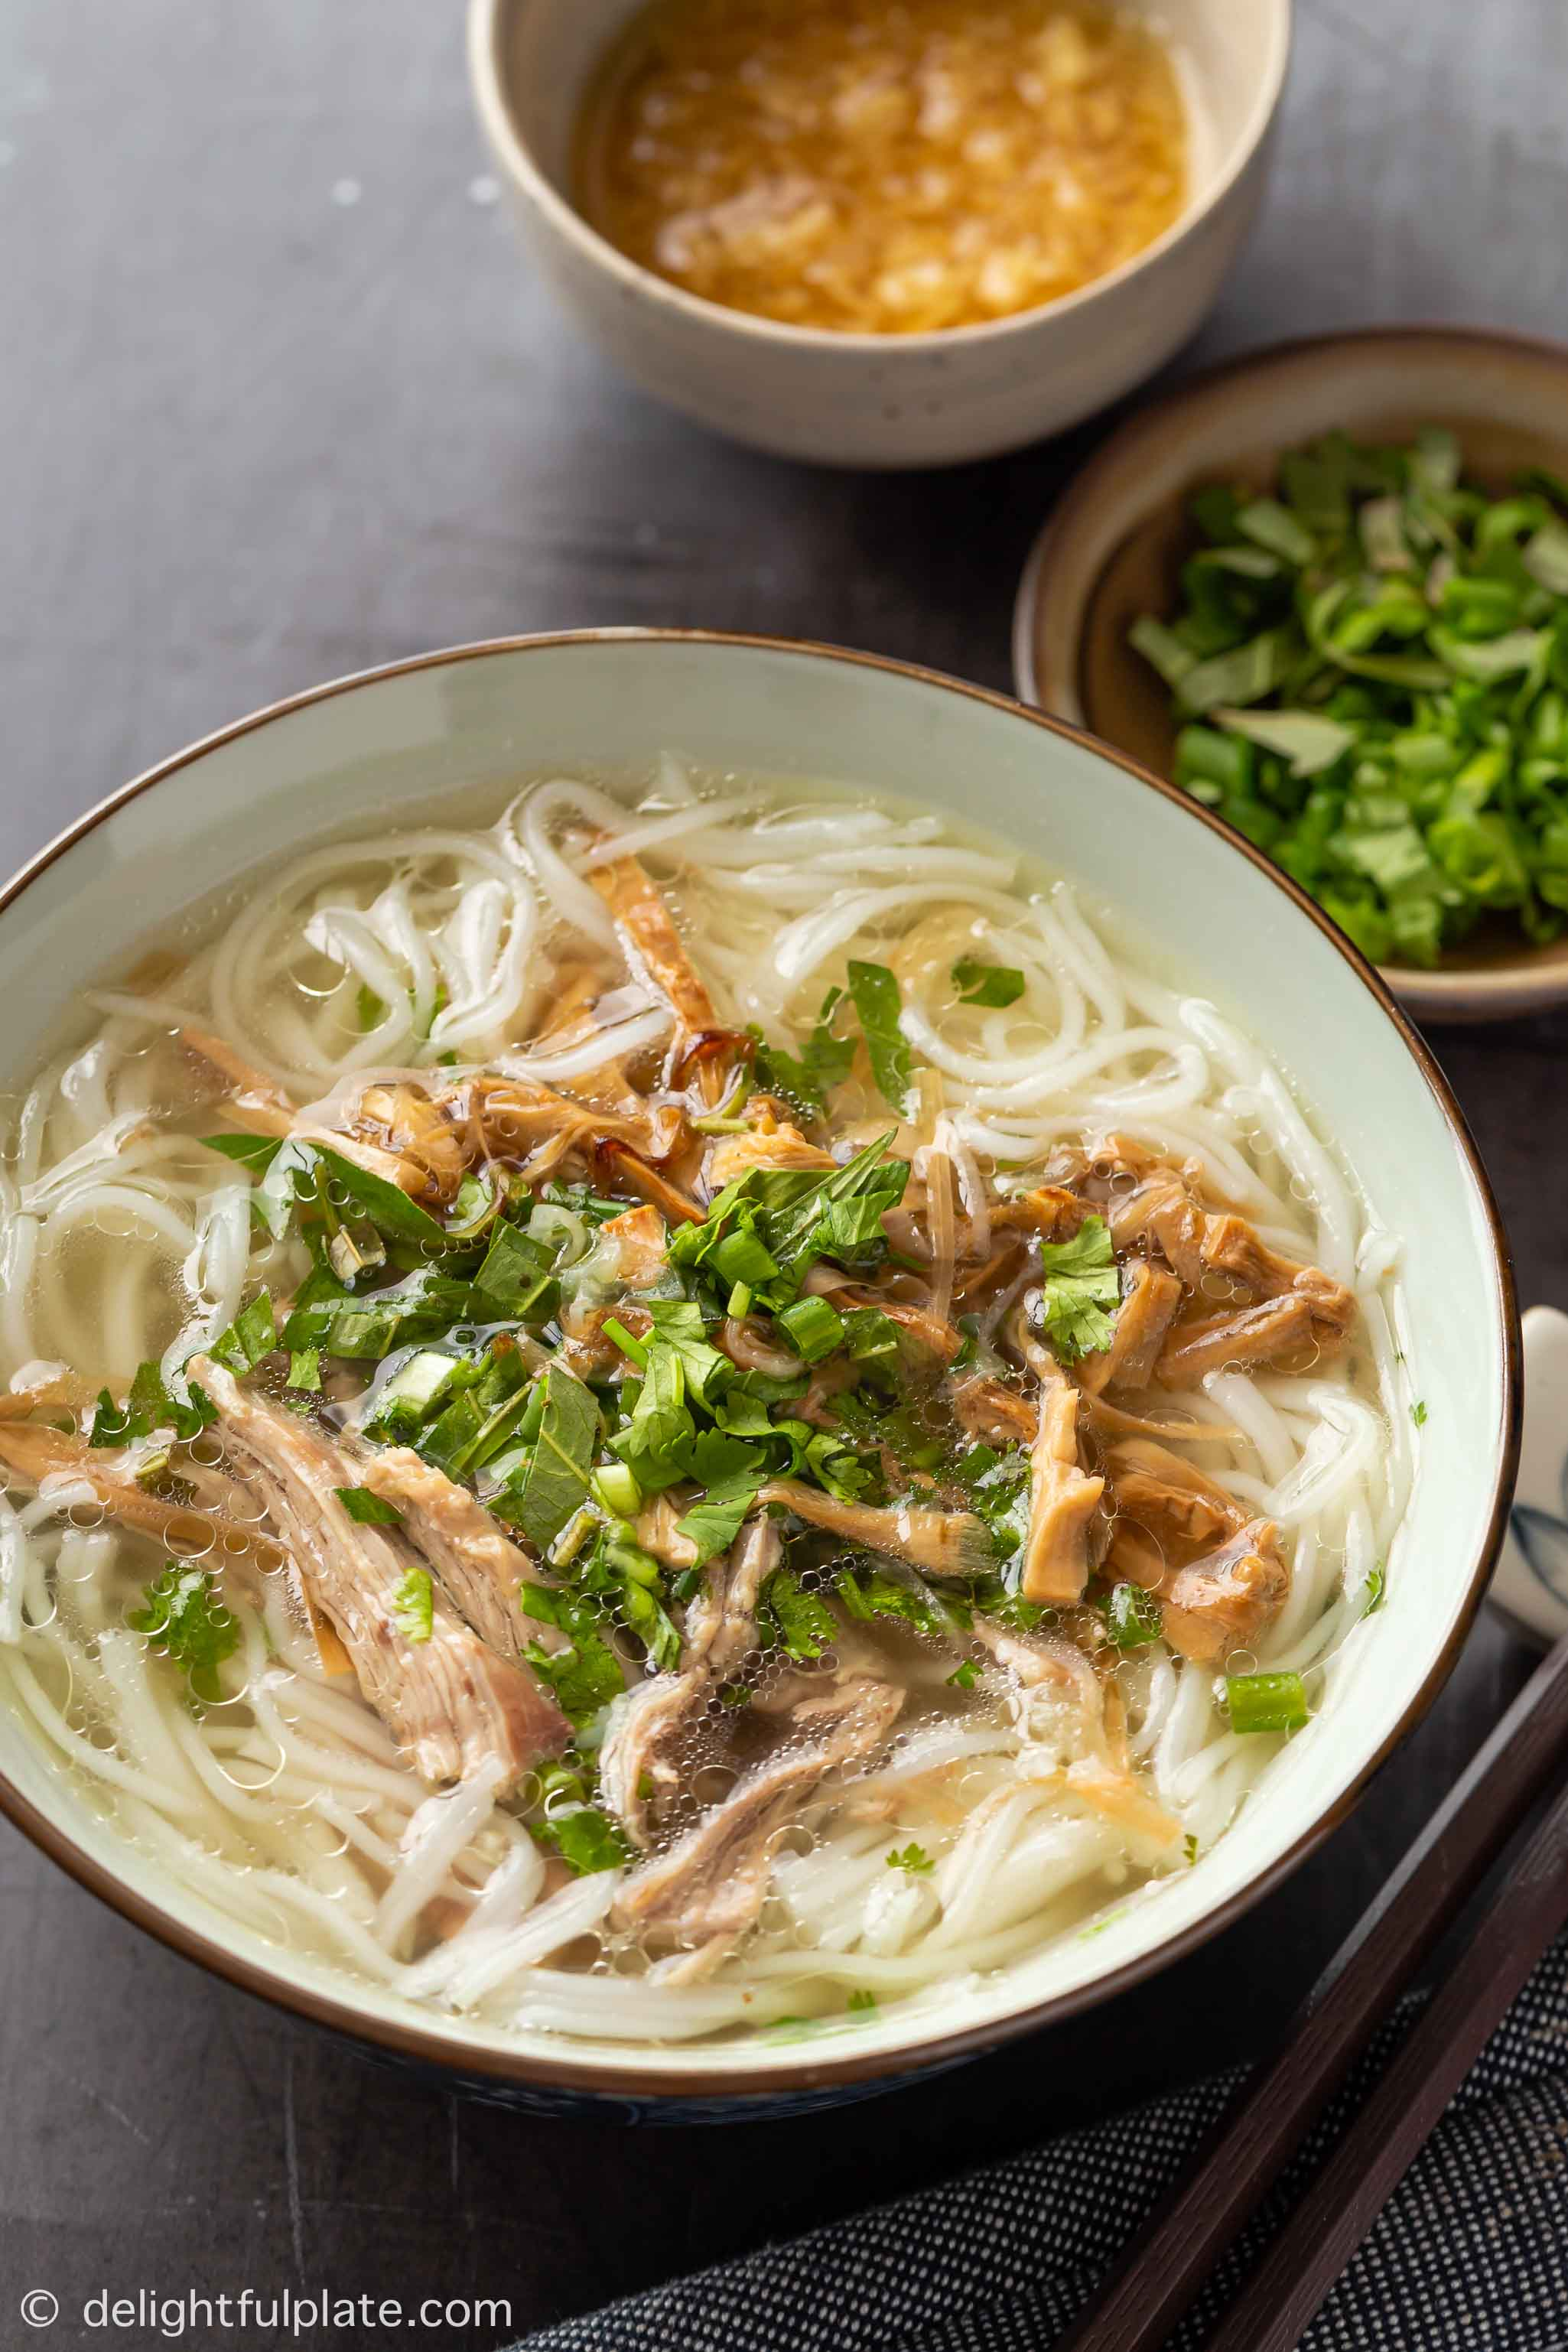 a bowl of Vietnamese duck and bamboo shoot noodle soup with ginger dipping sauce on the side